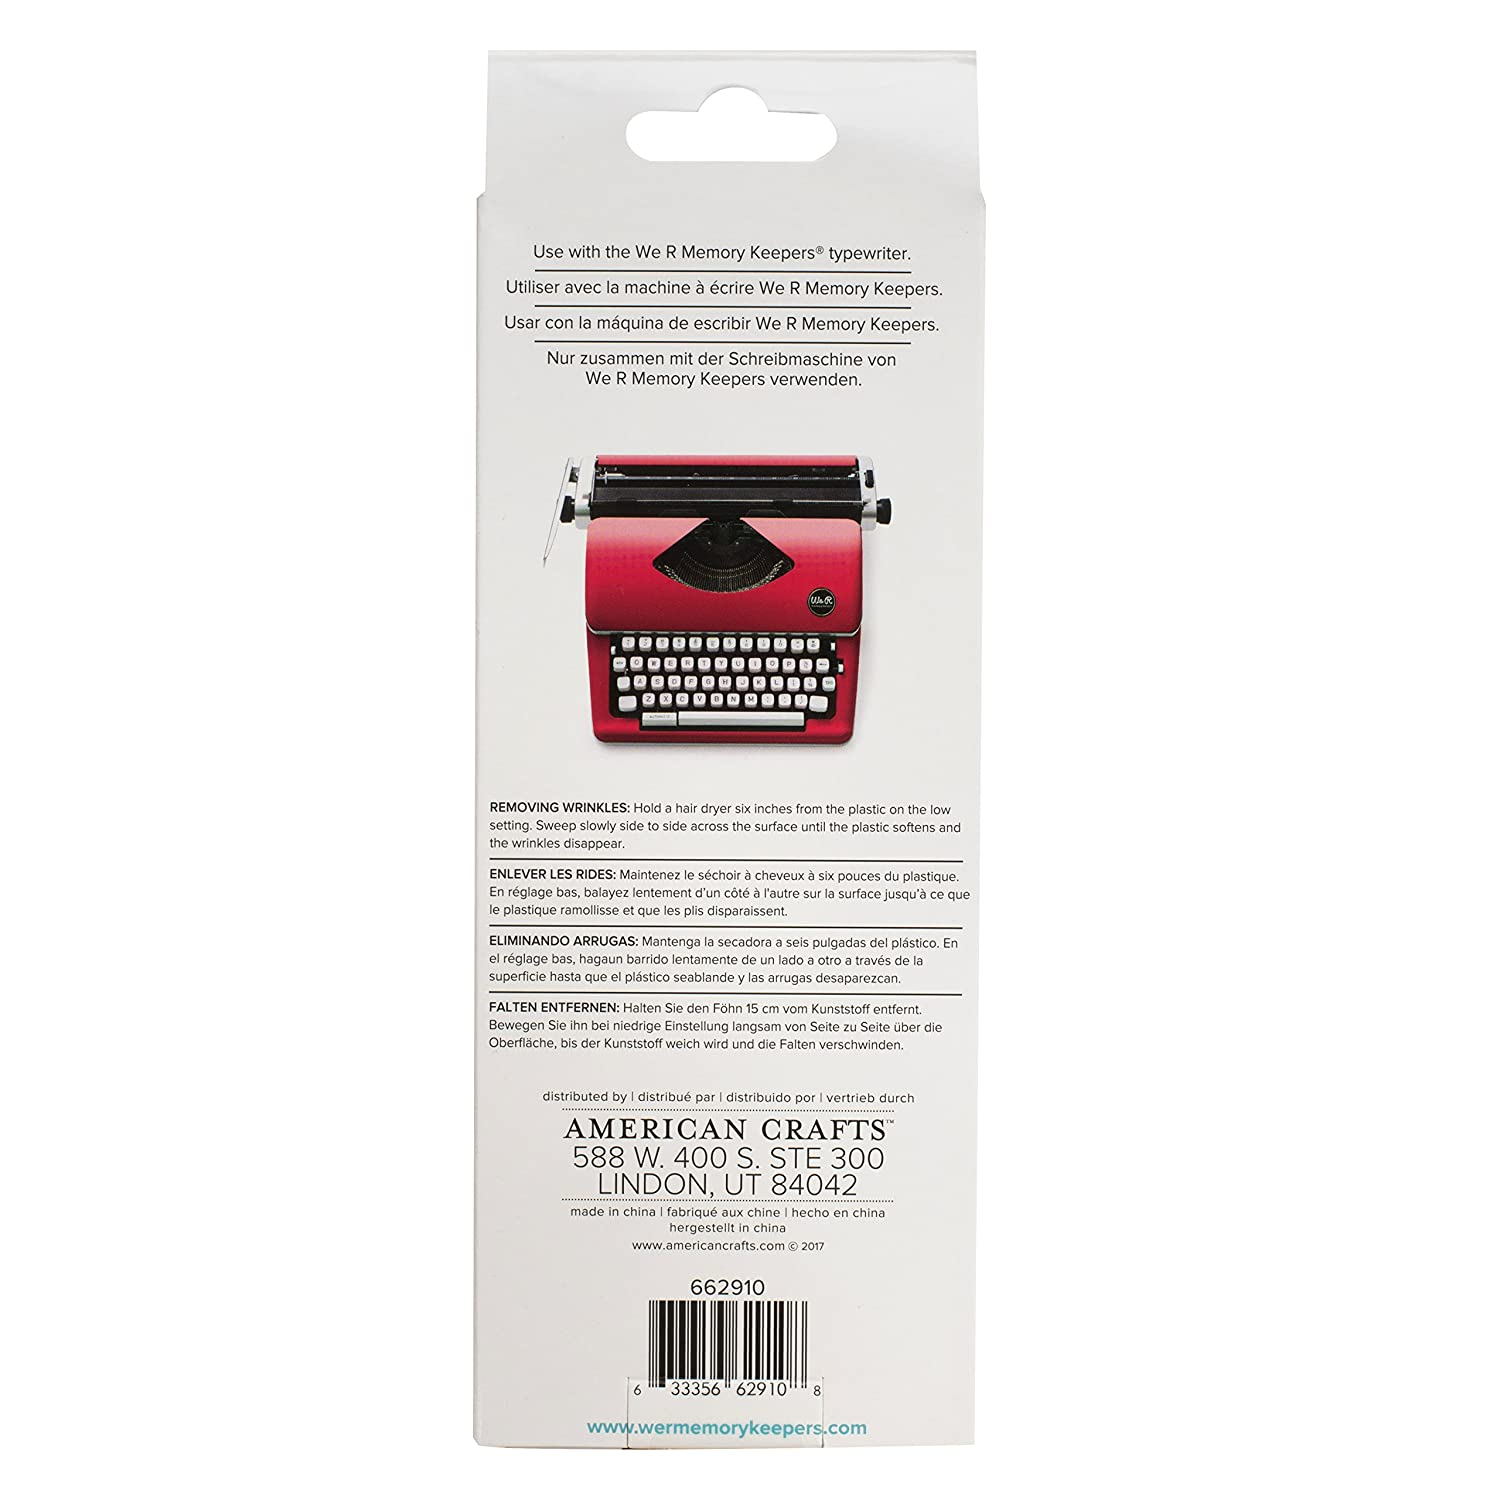 We R Memory Keepers Funda para máquina de Escribir Typecast Typewriter Rosa: Amazon.es: Hogar